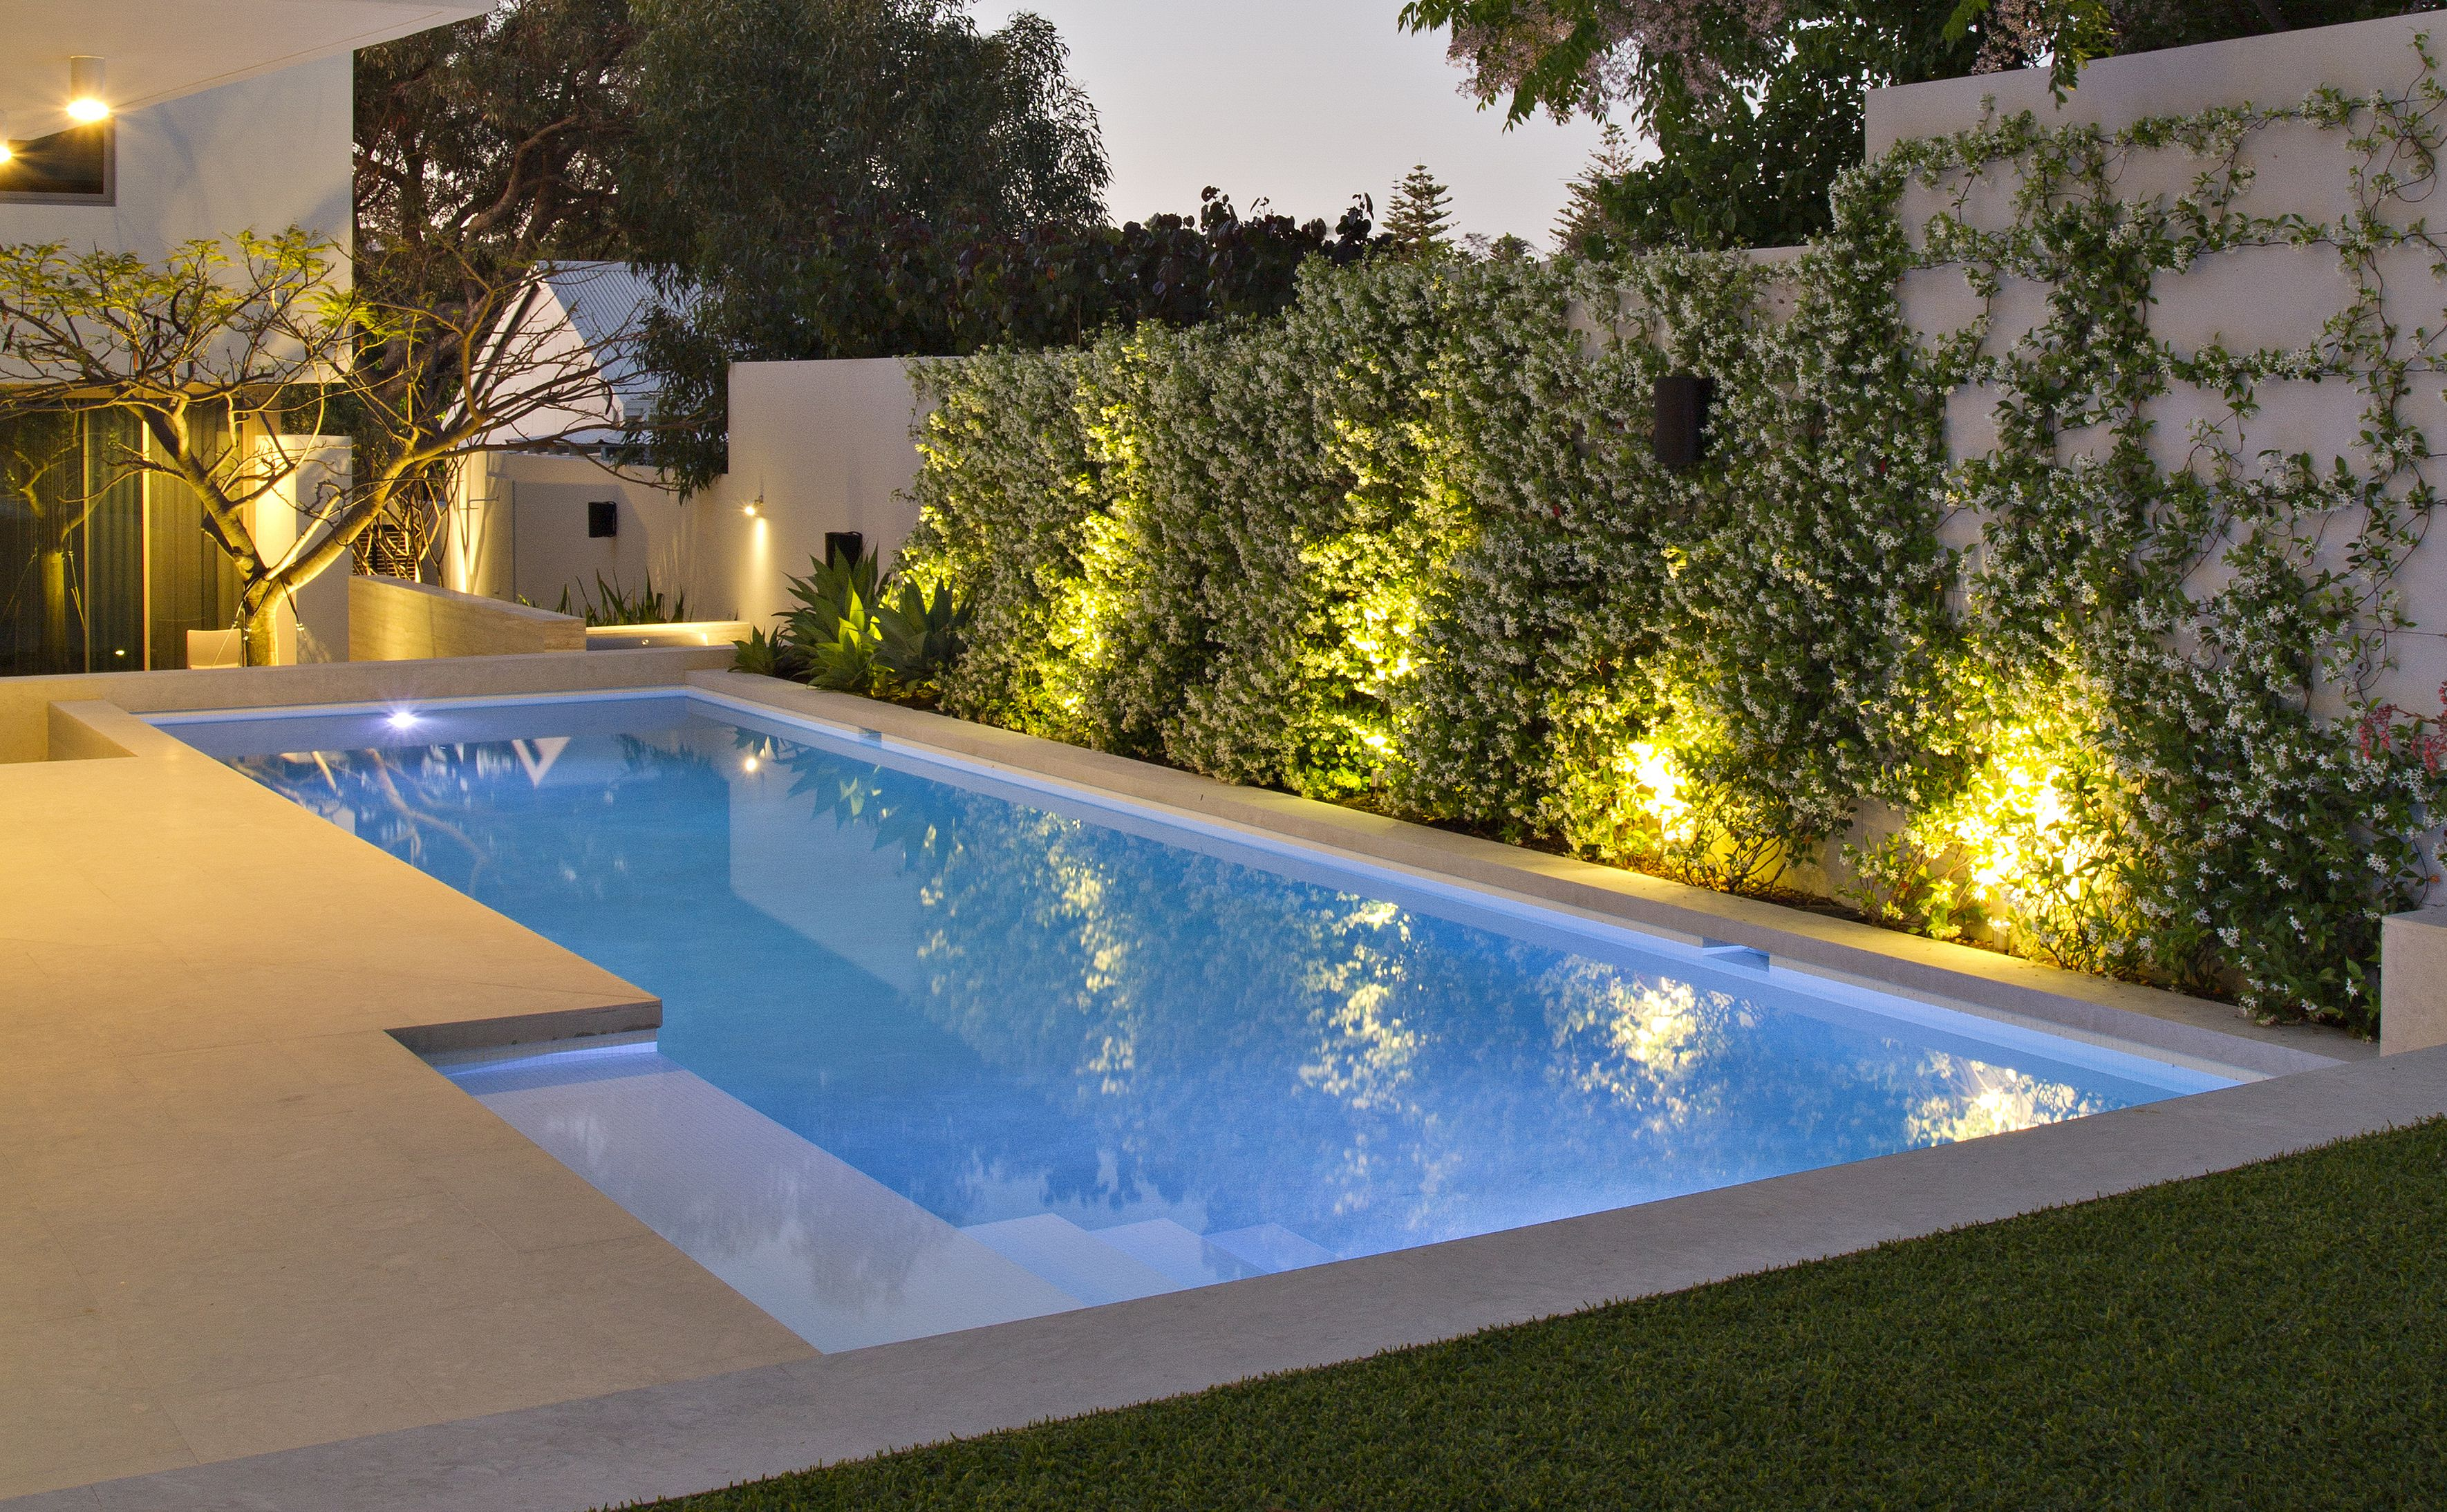 Pool, garden lighting, outdoor spaces Pool landscape